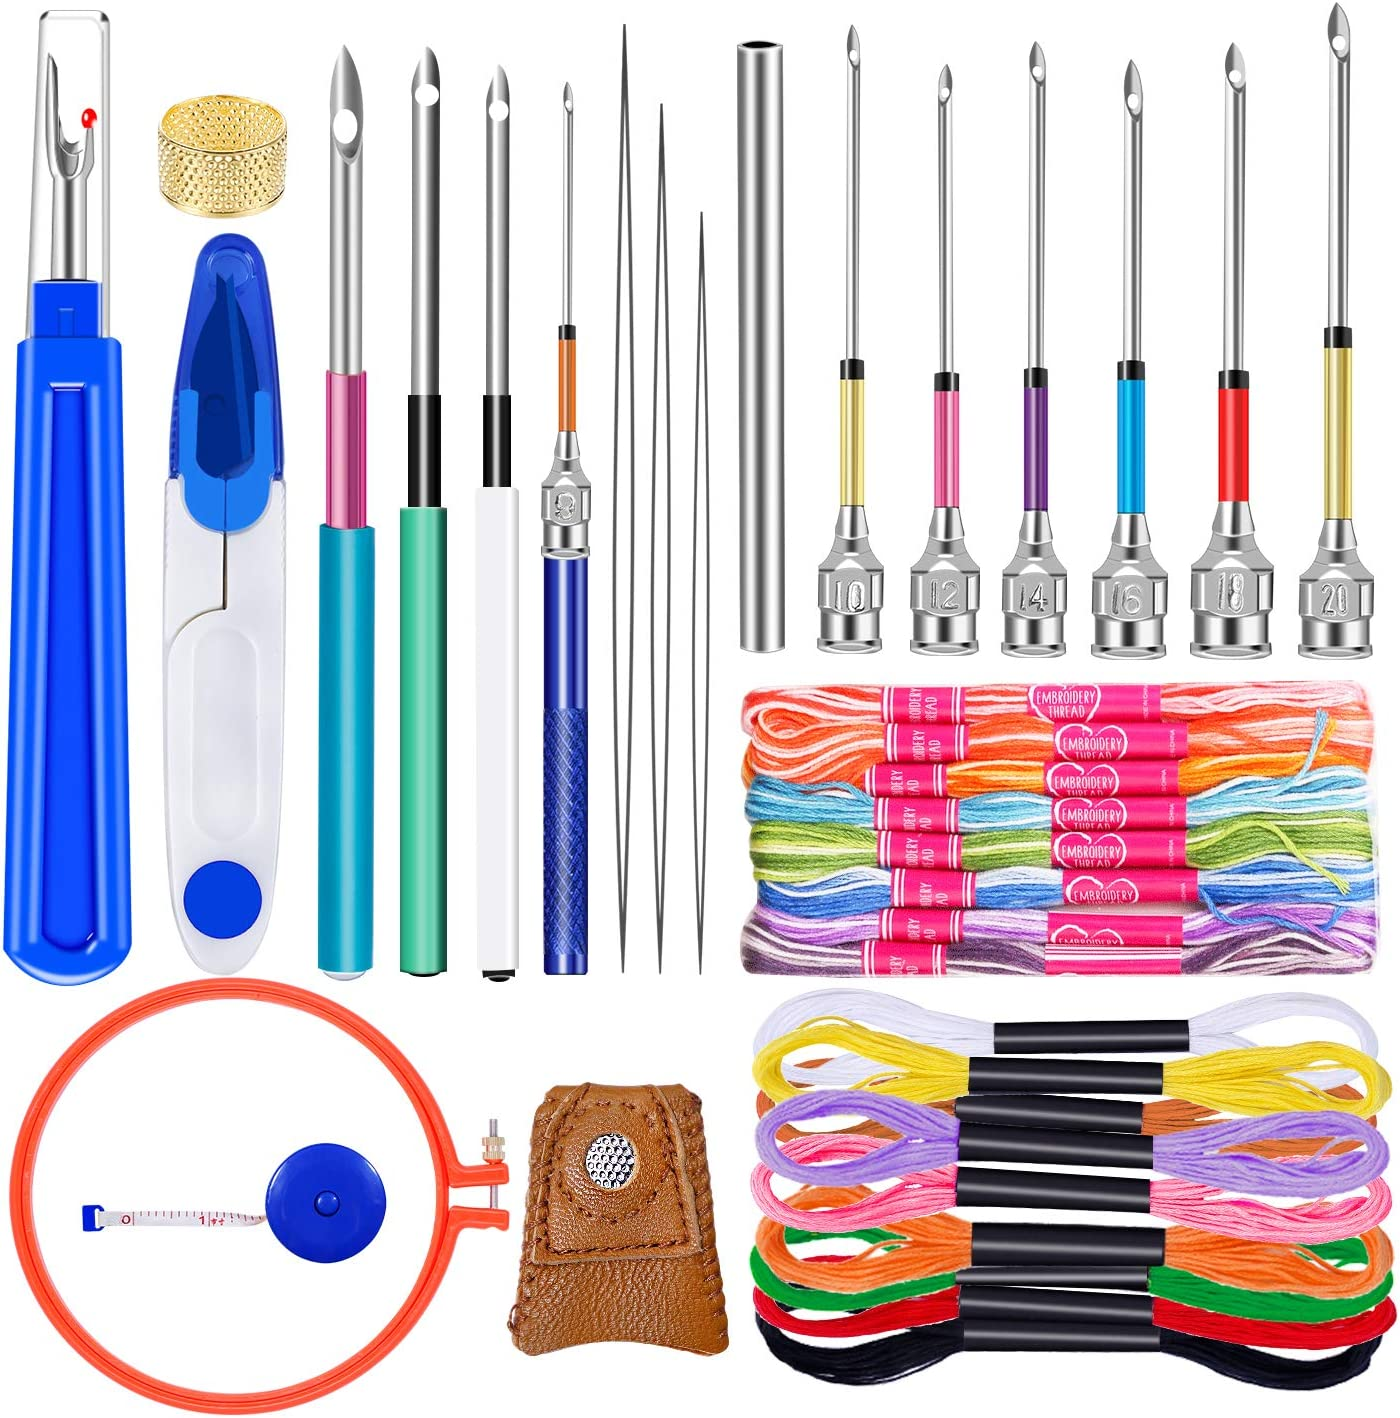 10 Pcs Embroidery Punch Needle Embroidery Beginner Kit with 20 Pcs Embroidery Floss Needle Threader and Embroidery Hoop for Embroidery Floss Poking Cross Stitching Jupean 41 Pcs Punch Needle Tool